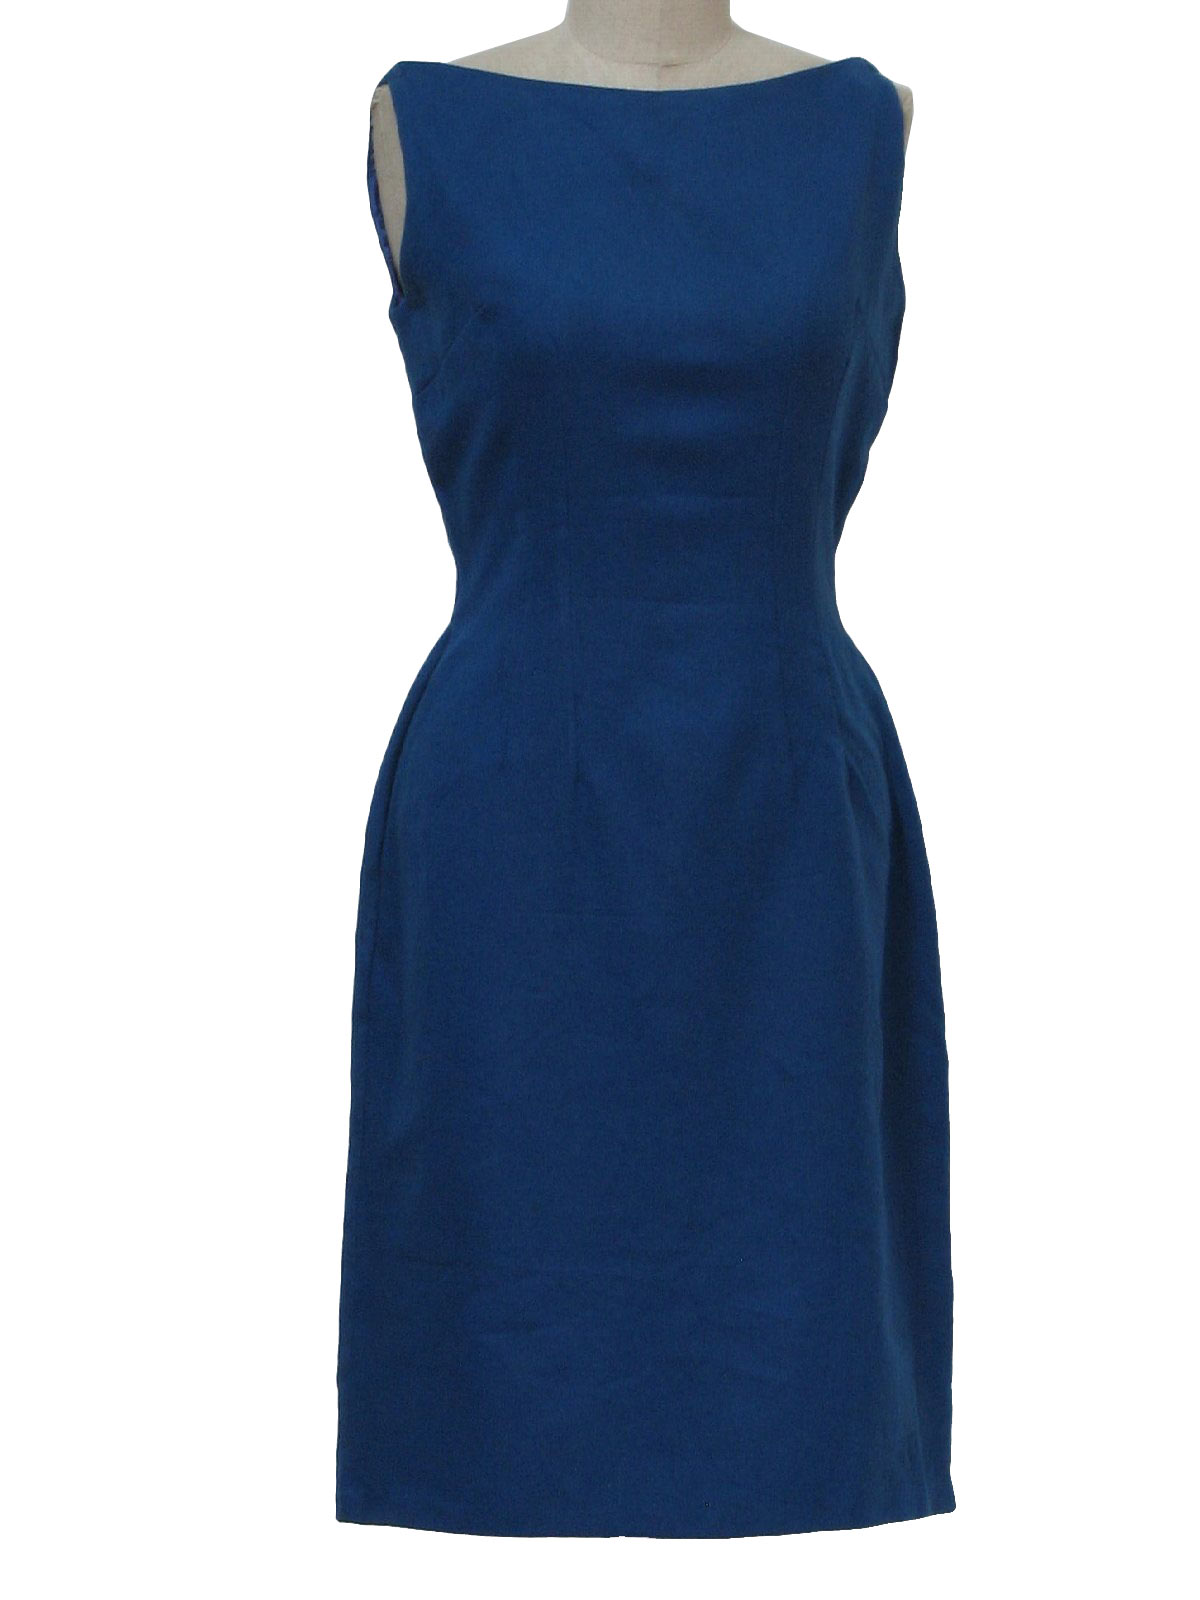 Retro Fifties Cocktail Dress: 50s -Size Label- Womens blue wool mid ...